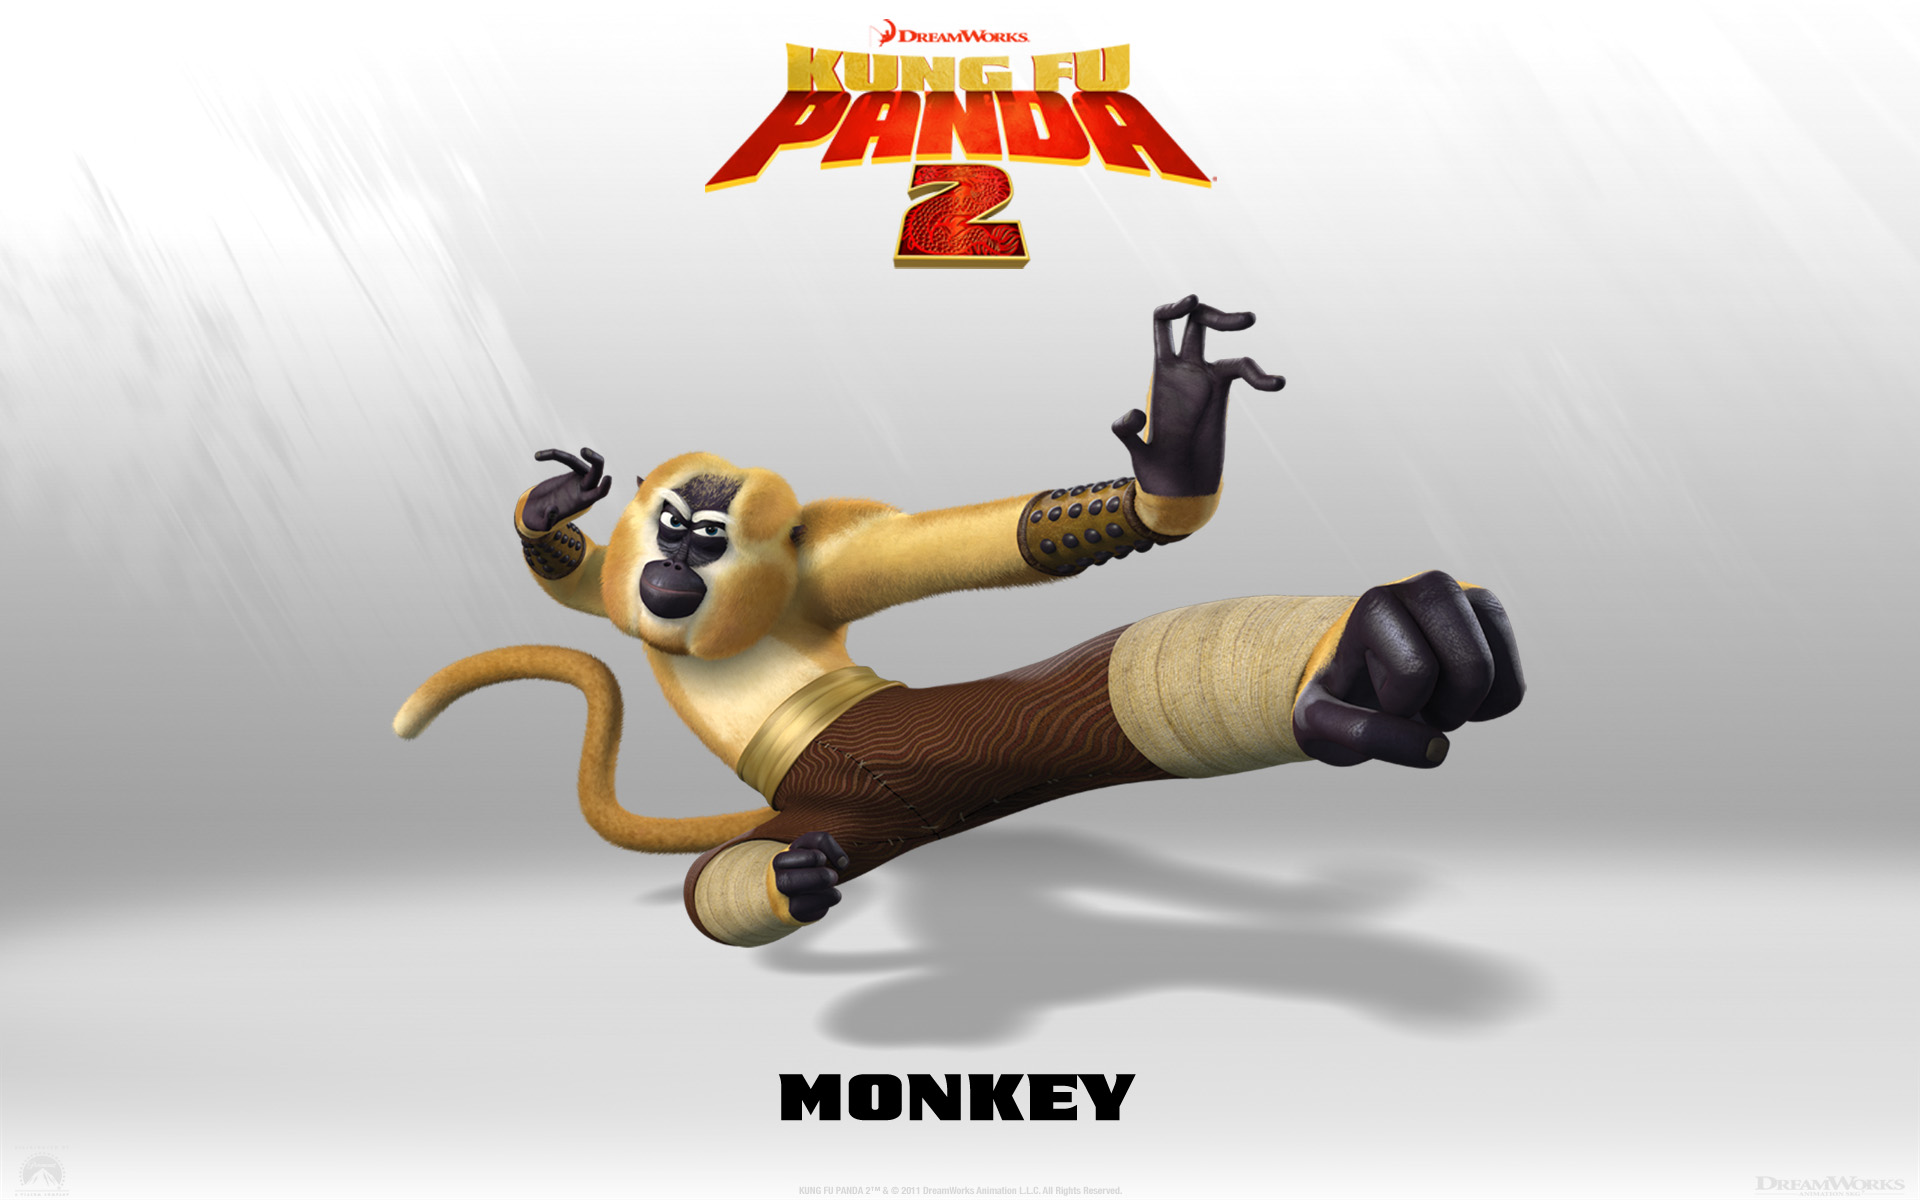 monkey from kung fu panda 2 movie desktop wallpaper